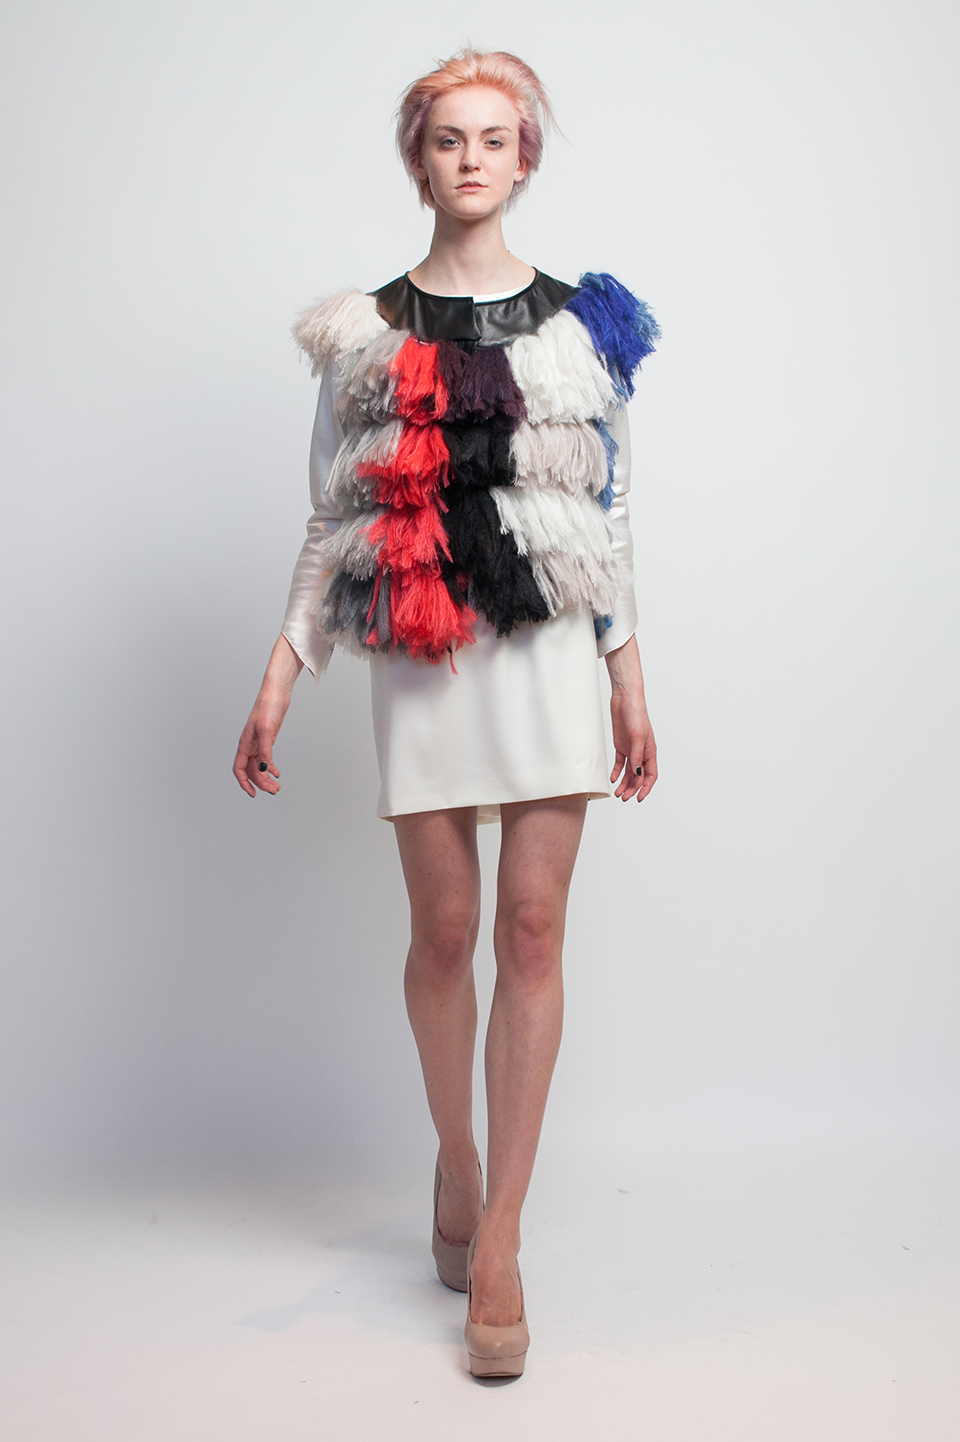 Claire Andrew Designer Fashion AW14 1 - Couture Knit Fringed Multi Gillet with Cream Sport Luxe Skirt